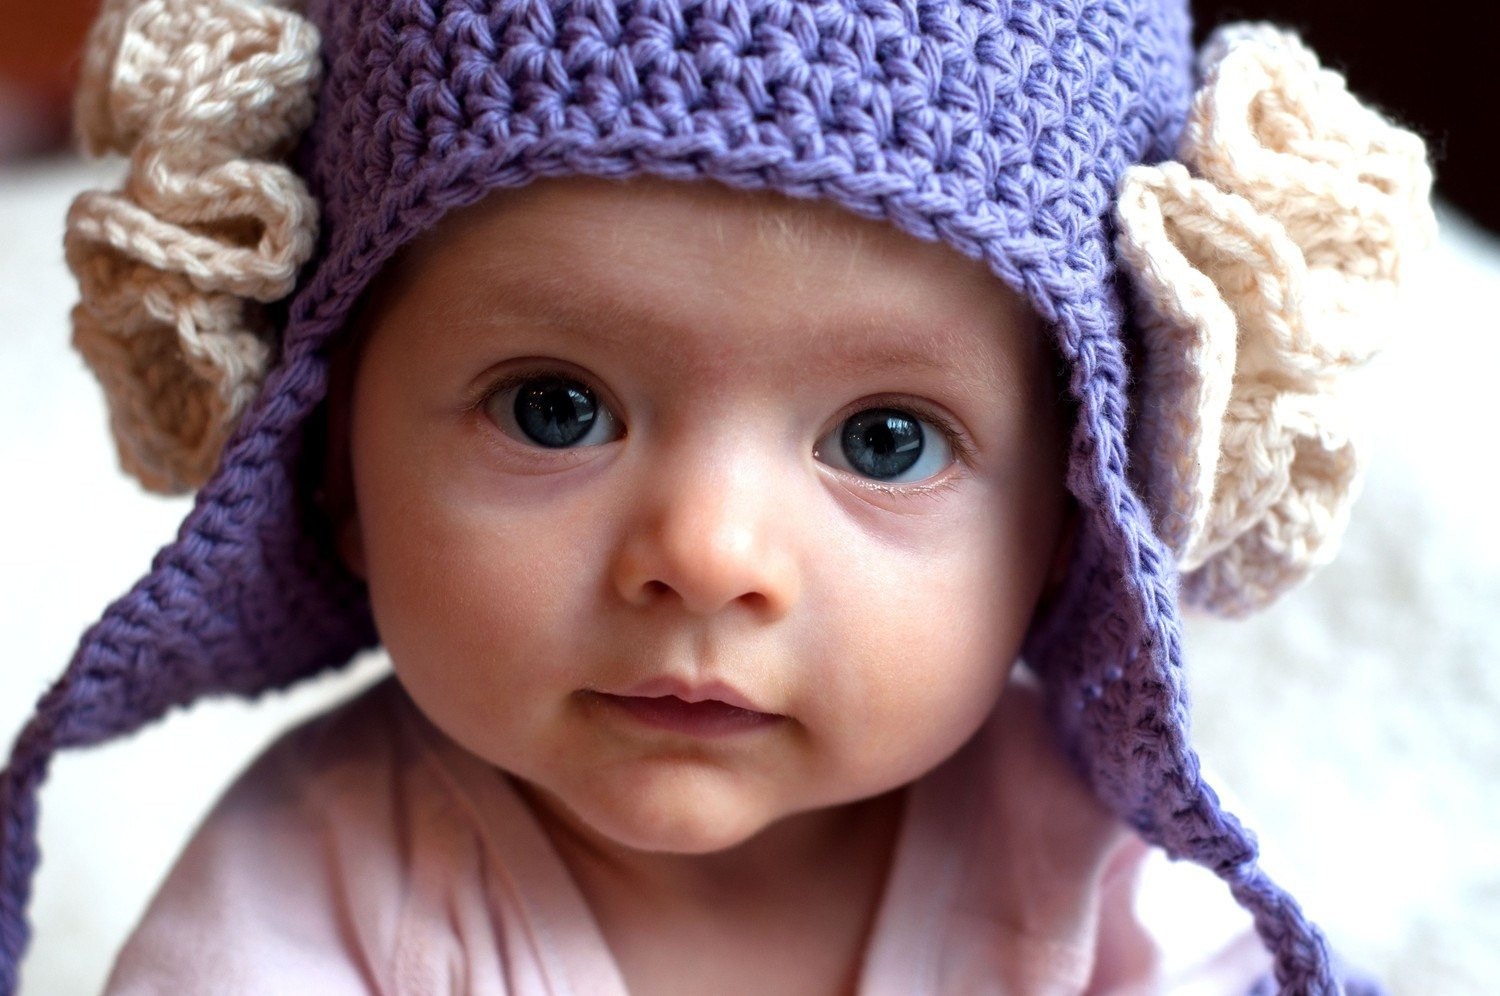 Crochet Hat with Ear Flaps Elegant Crochet Pattern Baby Earflap Hat for Boys and Girls Pdf Of Delightful 50 Pictures Crochet Hat with Ear Flaps